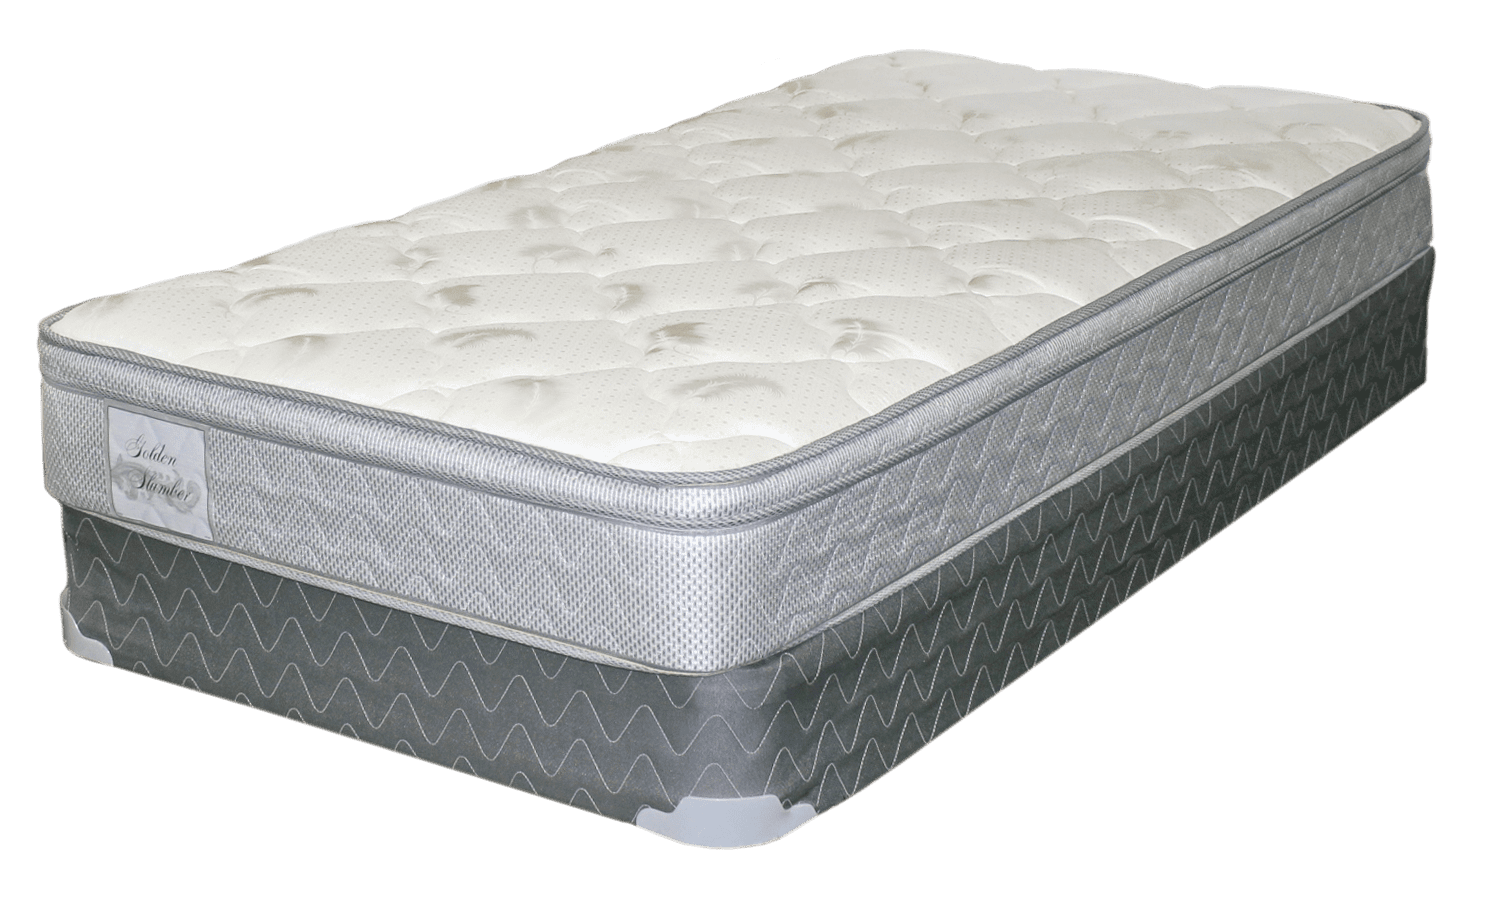 diamond mattress archives 2 brothers mattress best price